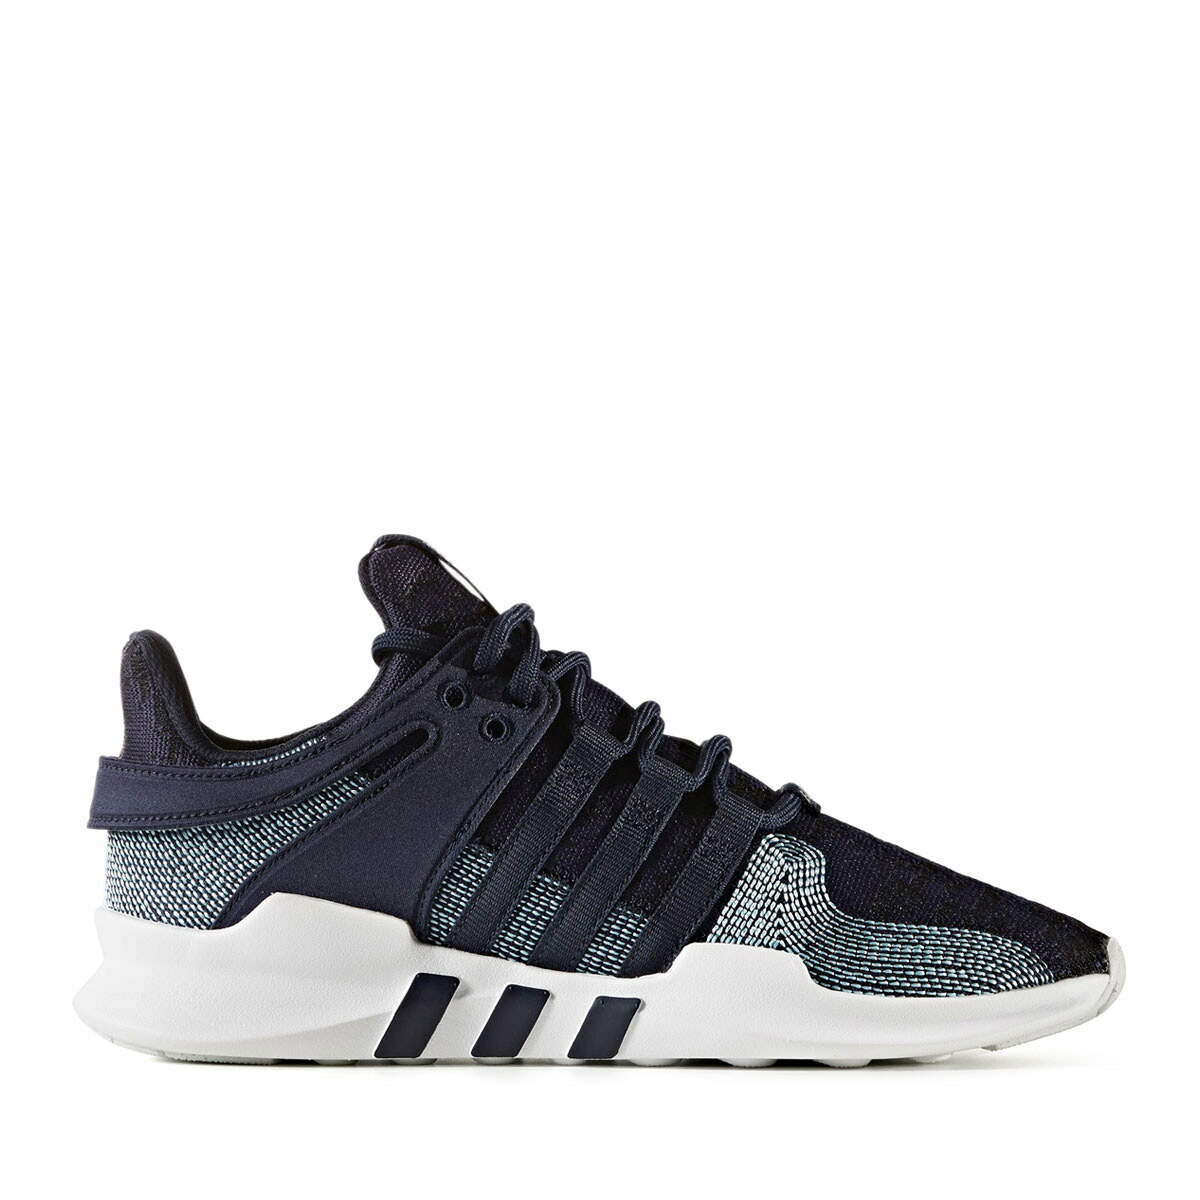 reputable site f9698 e5687 adidas Originals EQT SUPPORT ADV CK PARLEY (Adidas originals EQT support CK  soft-headed Ray) Legend Ink/Blue Sprit/Running White